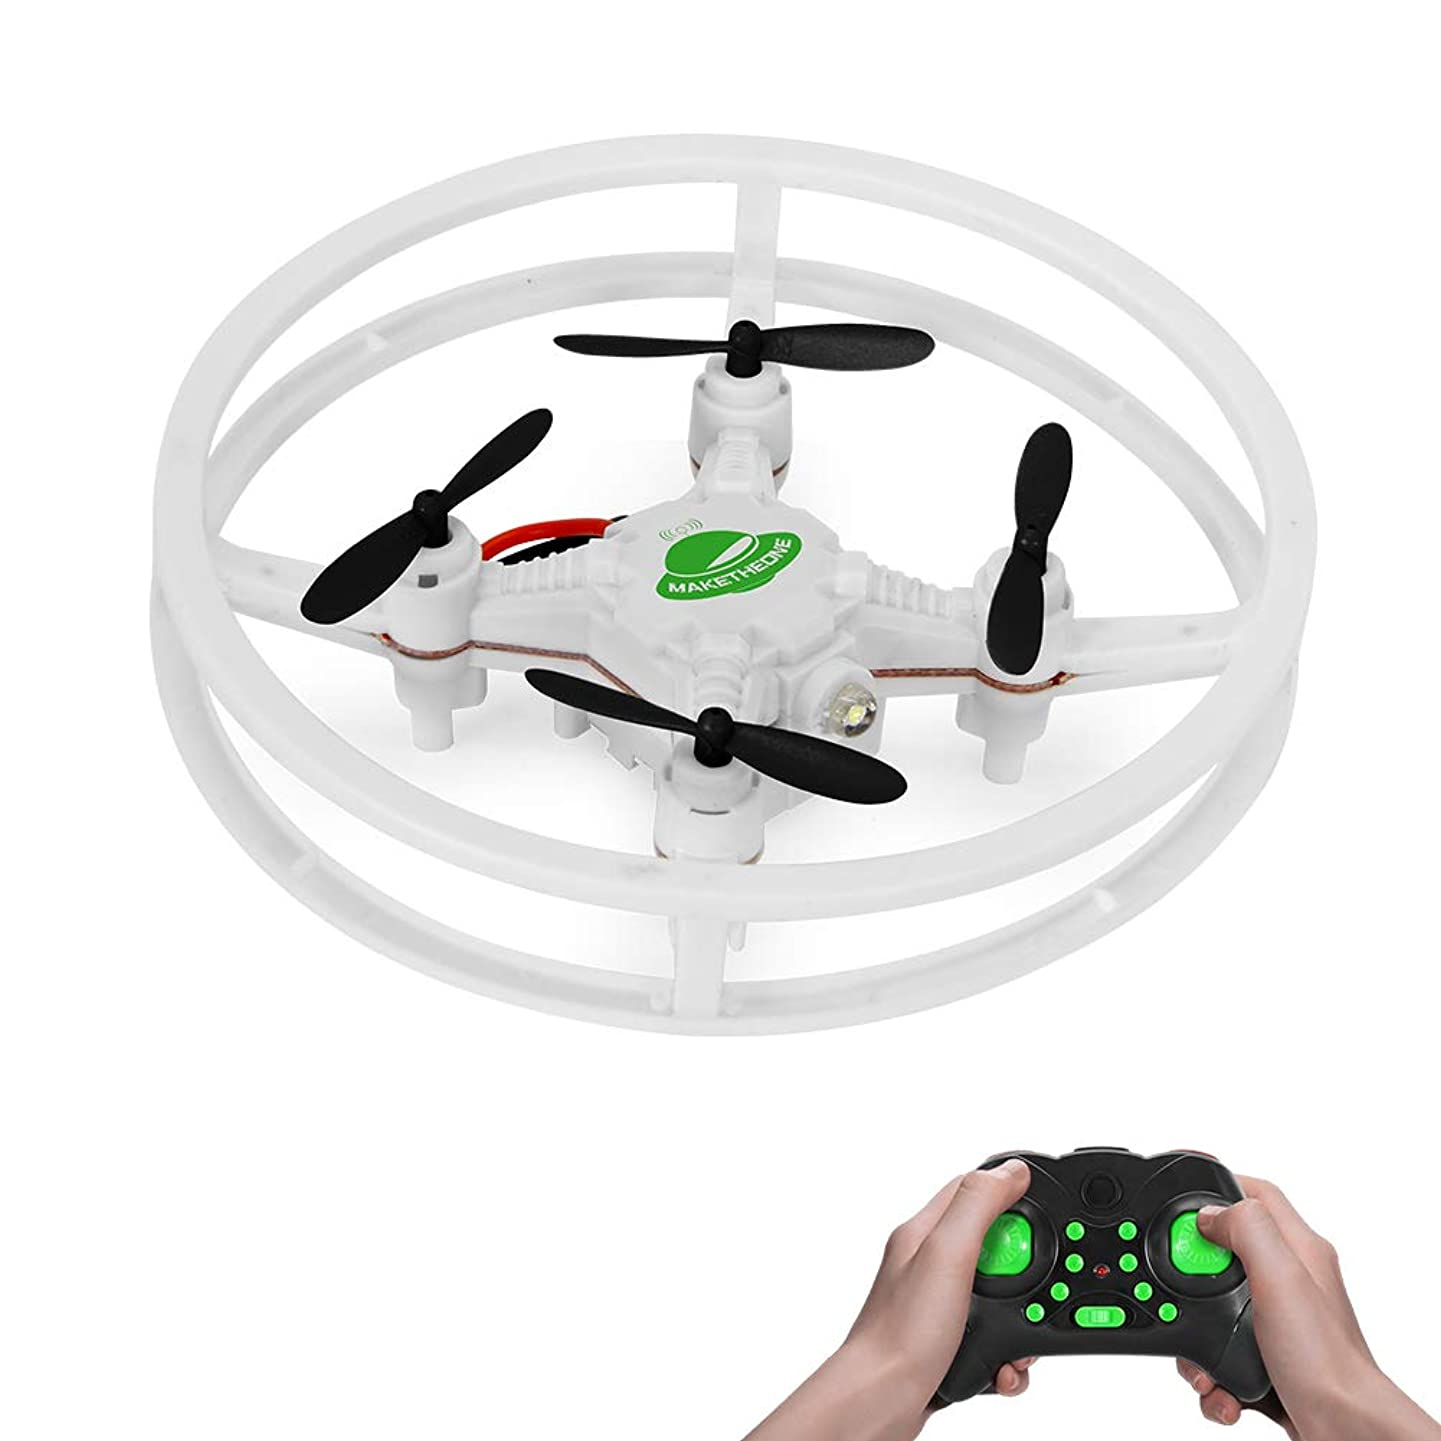 RC Nano Drone, MAKETHEONE Super-F Mini Racing Drone 4CH 2.4GHz 6-Axis Remote Control Quadcopter Helicopter RTF with Headless Mode Flash LED (UFO White)